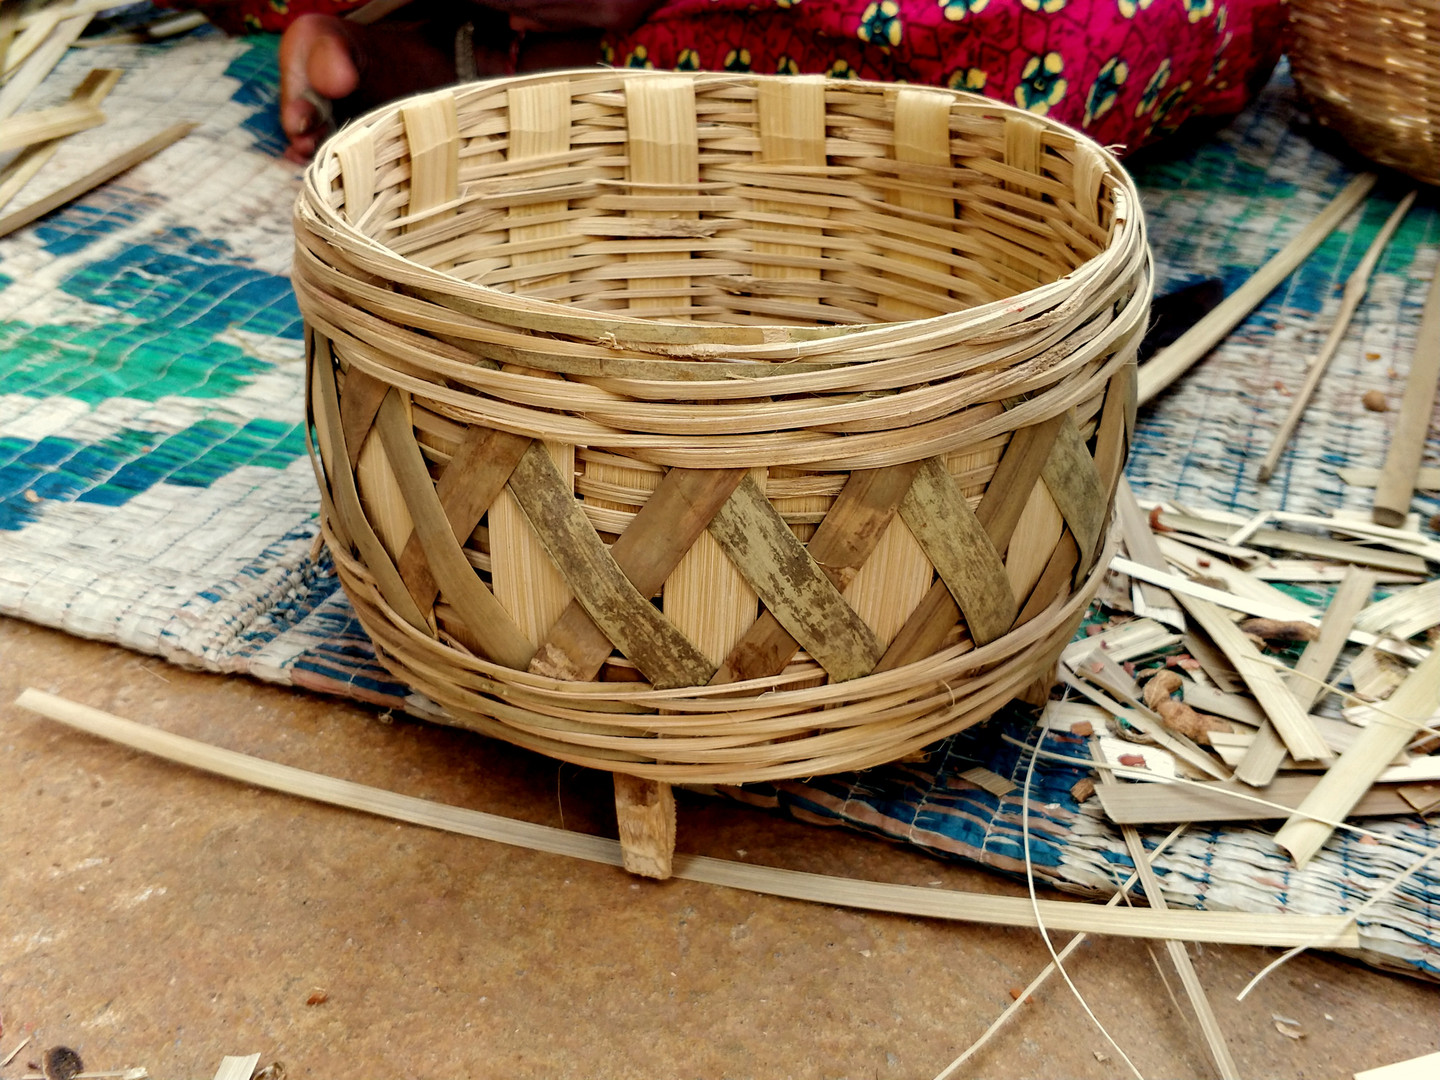 Baskets for temples